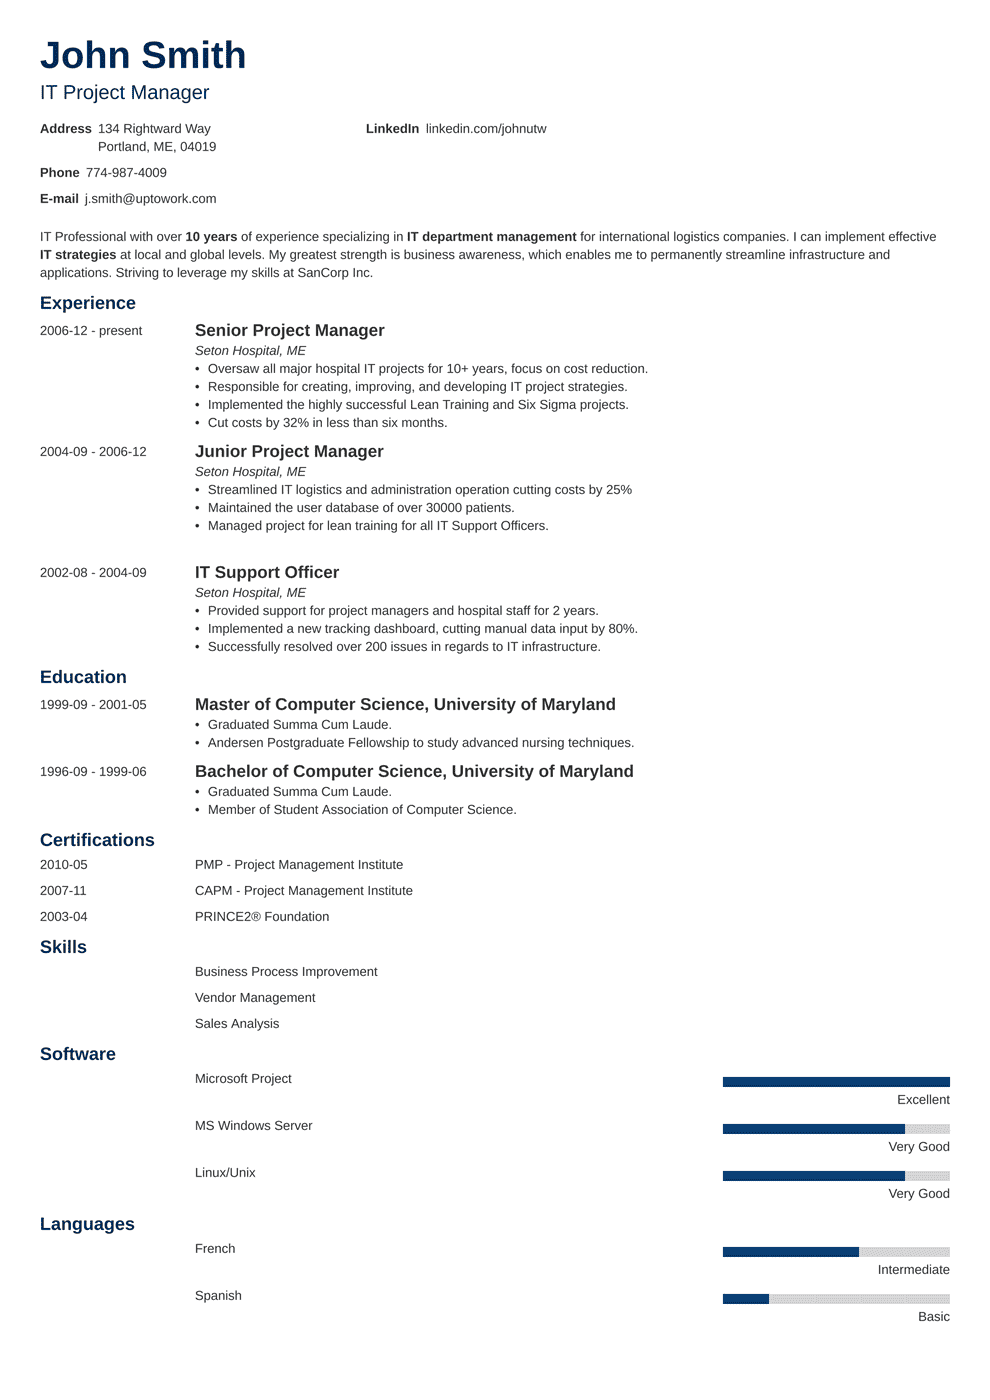 Project Manager Resume Sample & Writing Guide (20+ Best Examples)